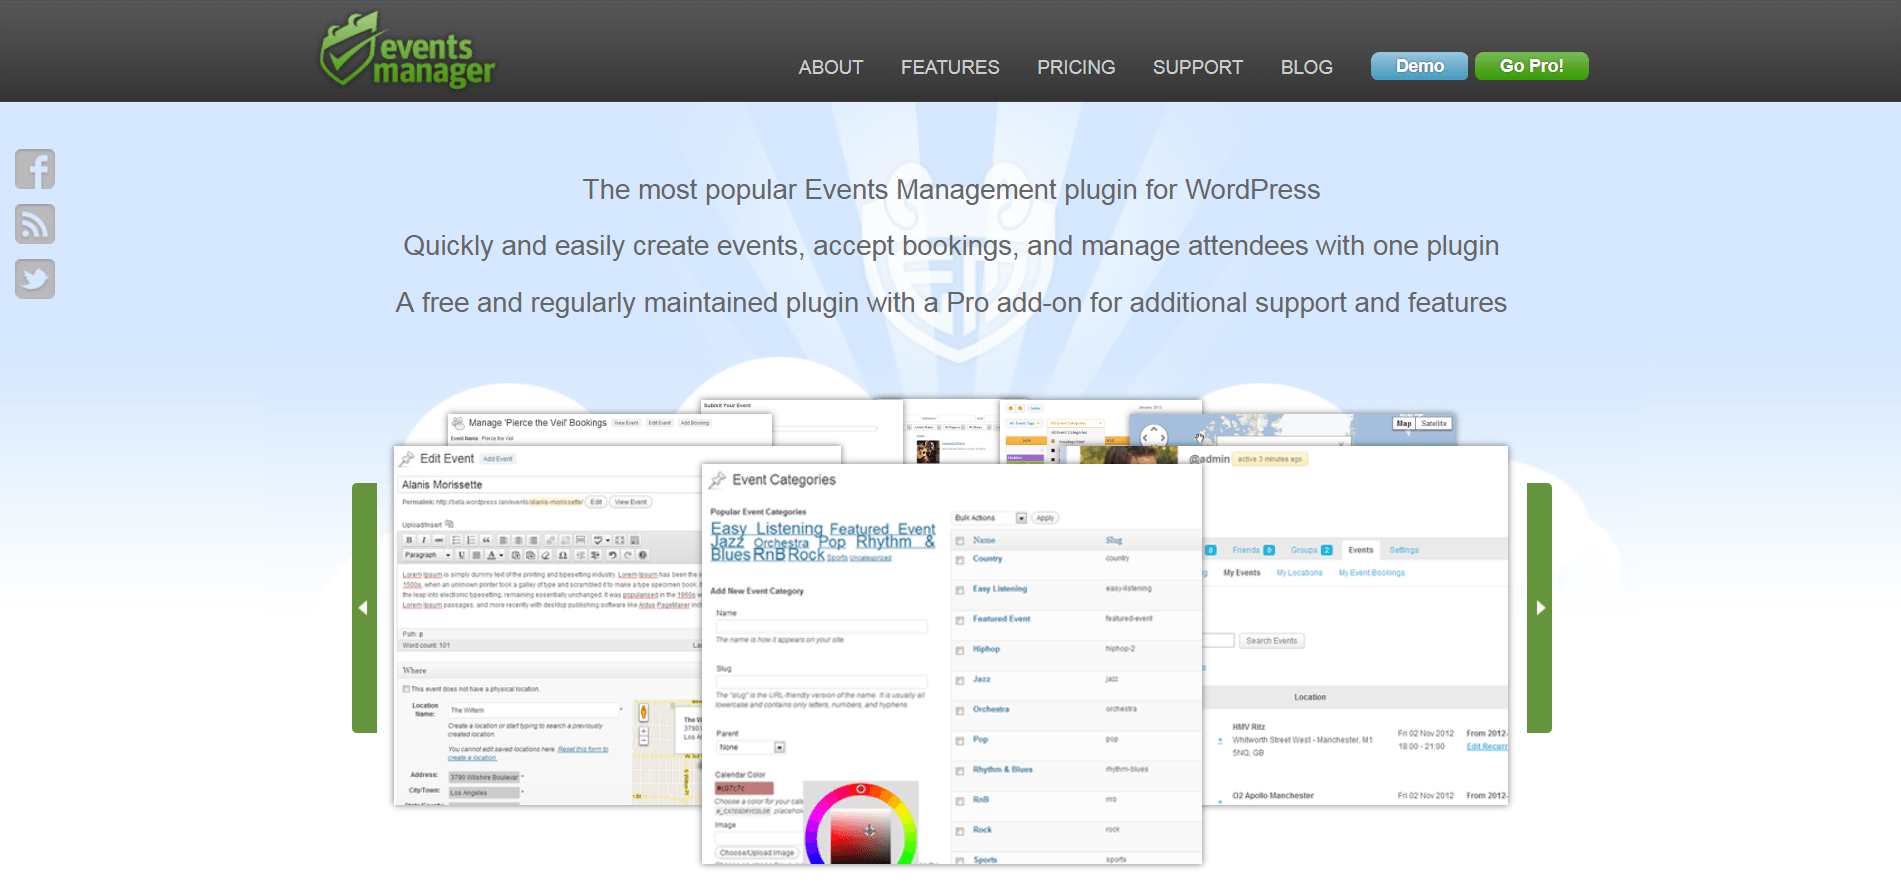 The Events Manager website.